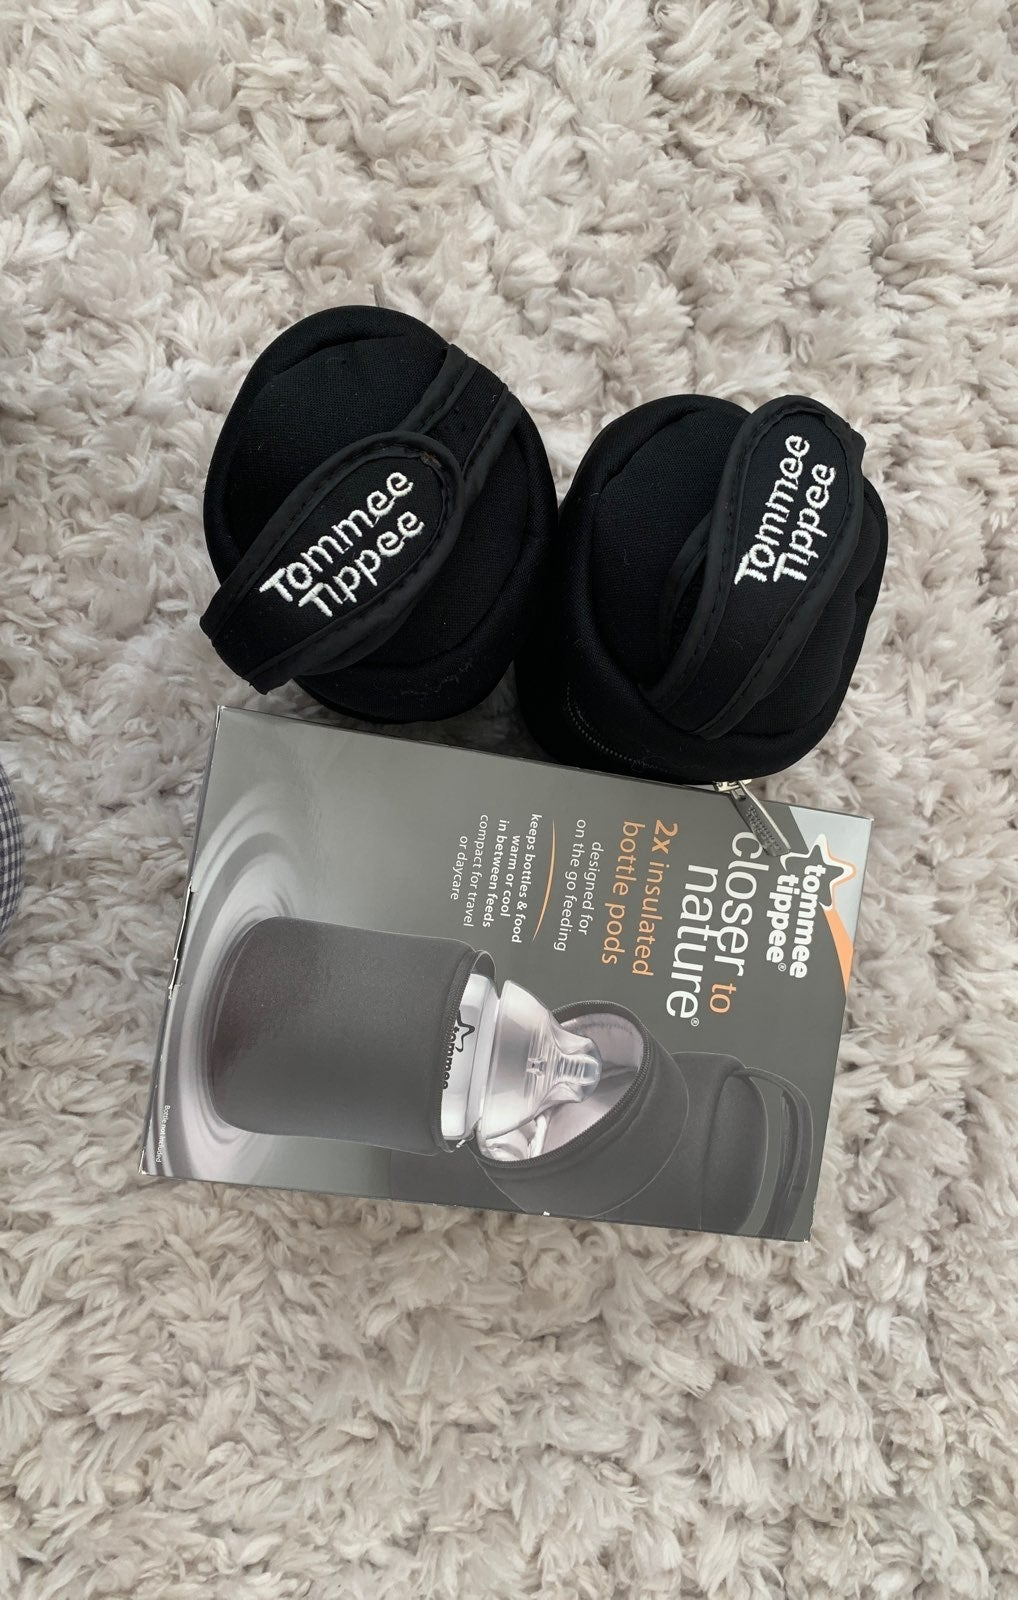 Tommee tippee insulated bottle pods - se